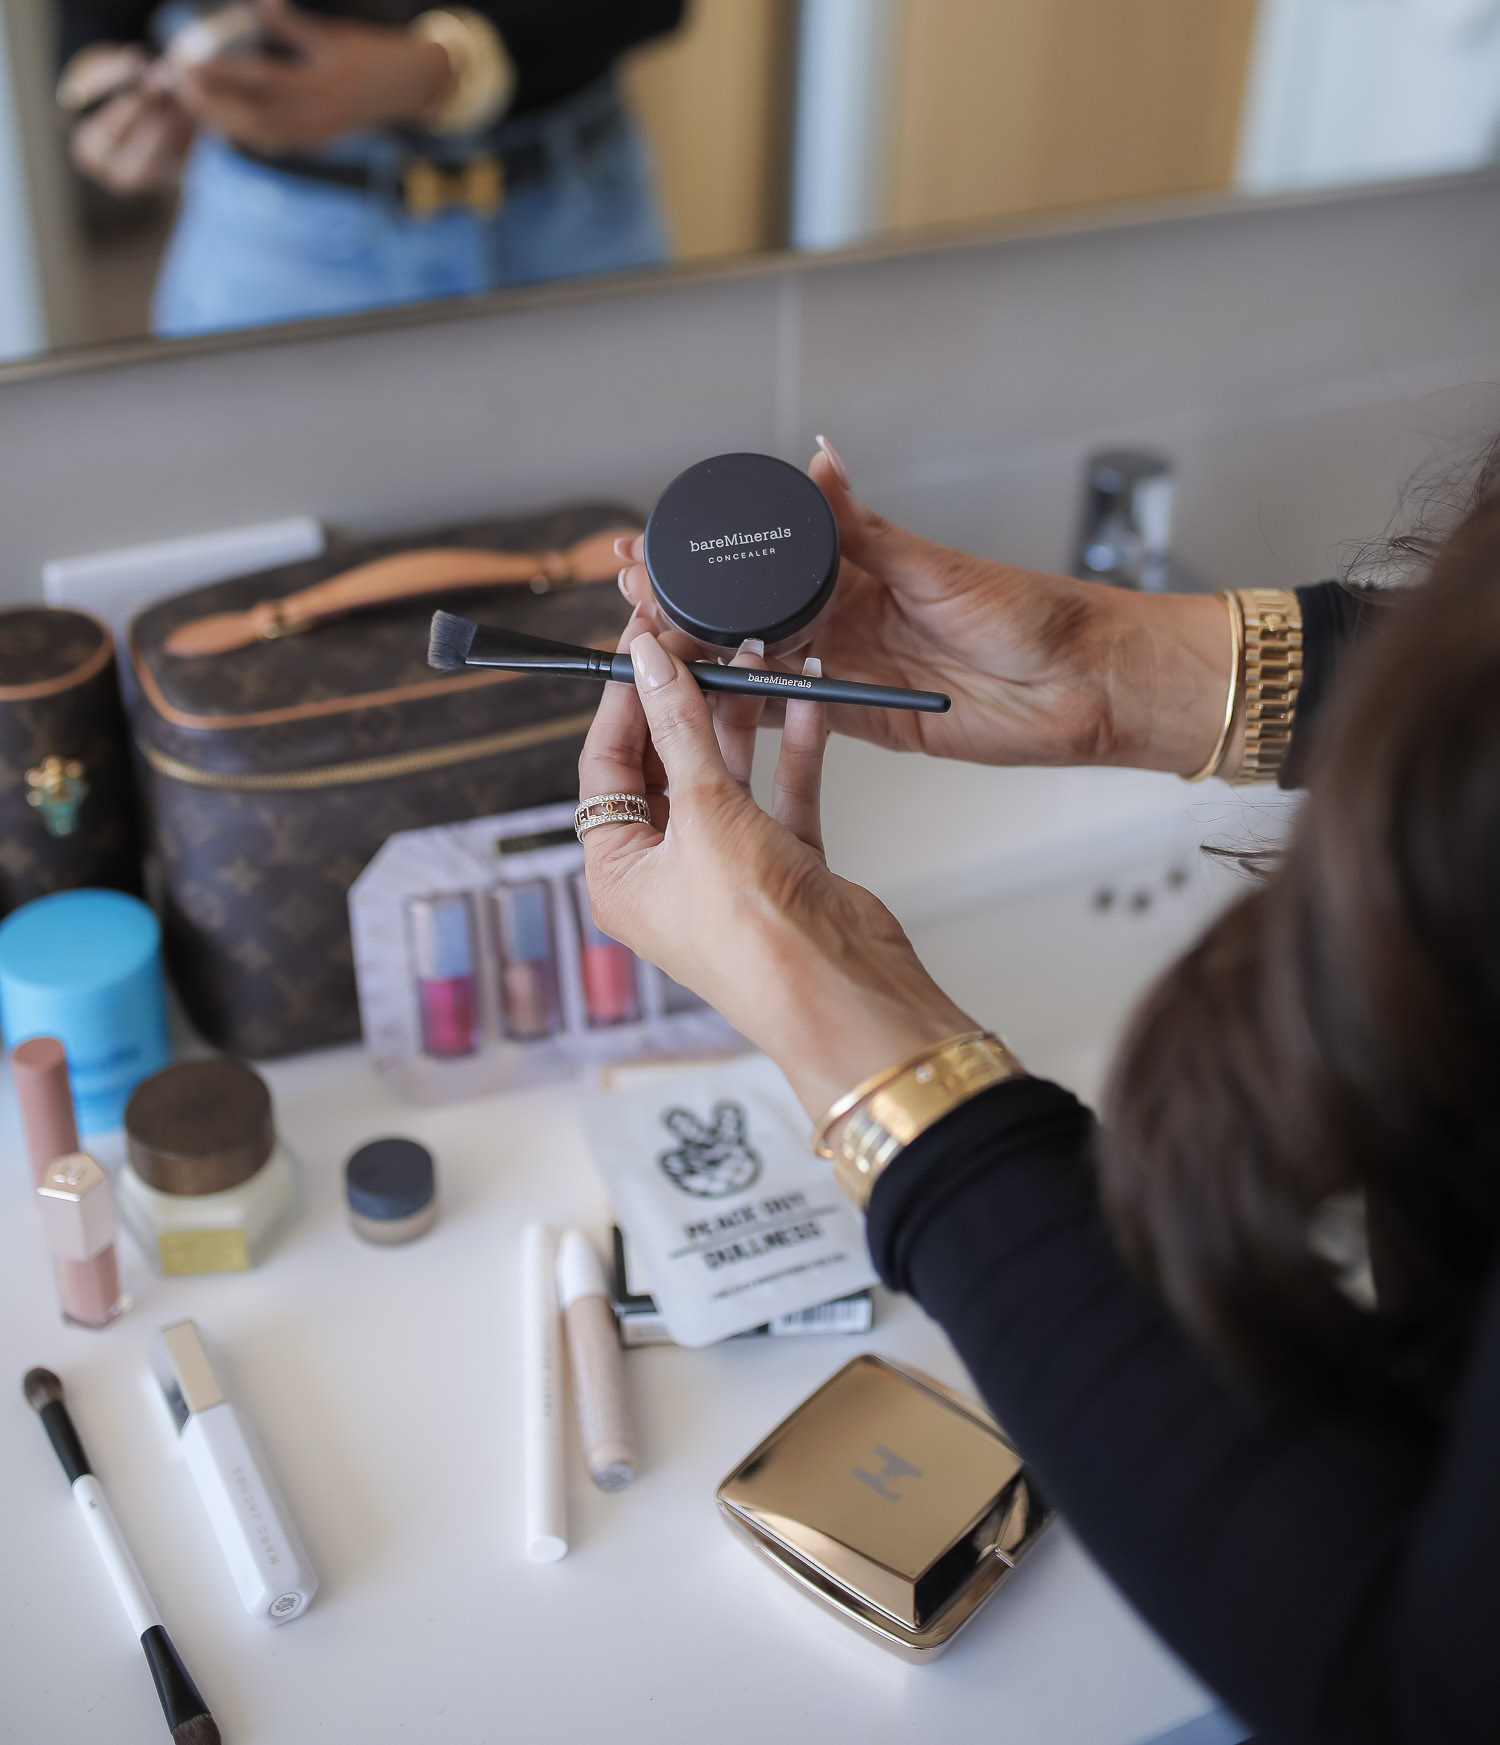 Sephora savings event fall 2020, sephora VIB sale event, beauty blogger sephora favorites fall 2020, emily ann gemma-6 |Sephora Beauty Insider Sale by popular US beauty blog, The Sweetest Thing: image of Emily Gemma wearing a black turtle neck and distressed jeans and holding some Bare Minerals powder and a Bare Minerals application brush.